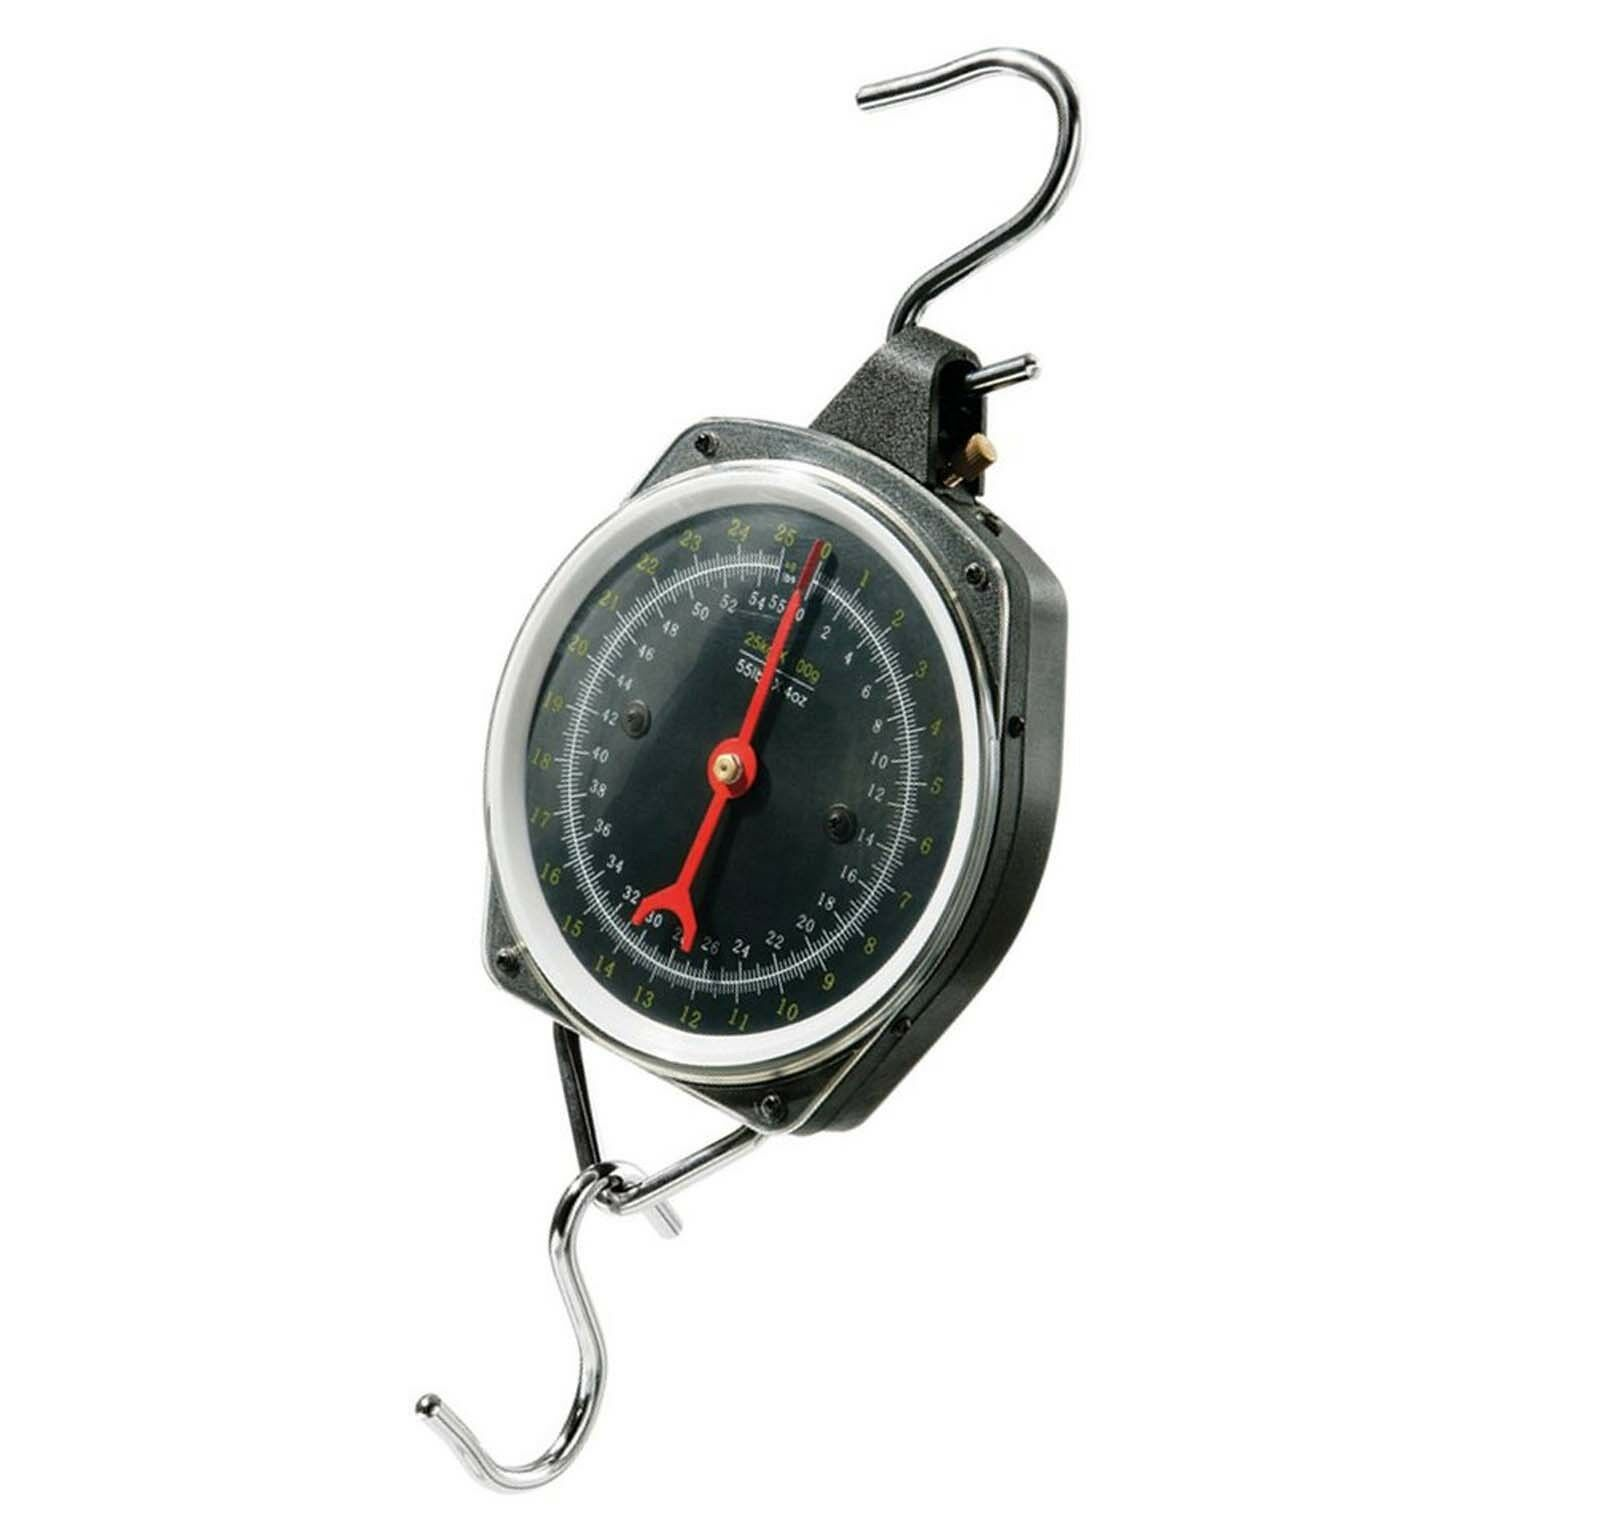 Leeda heavy duty weighing scales carp coarse fishing dial for Fish weighing scale